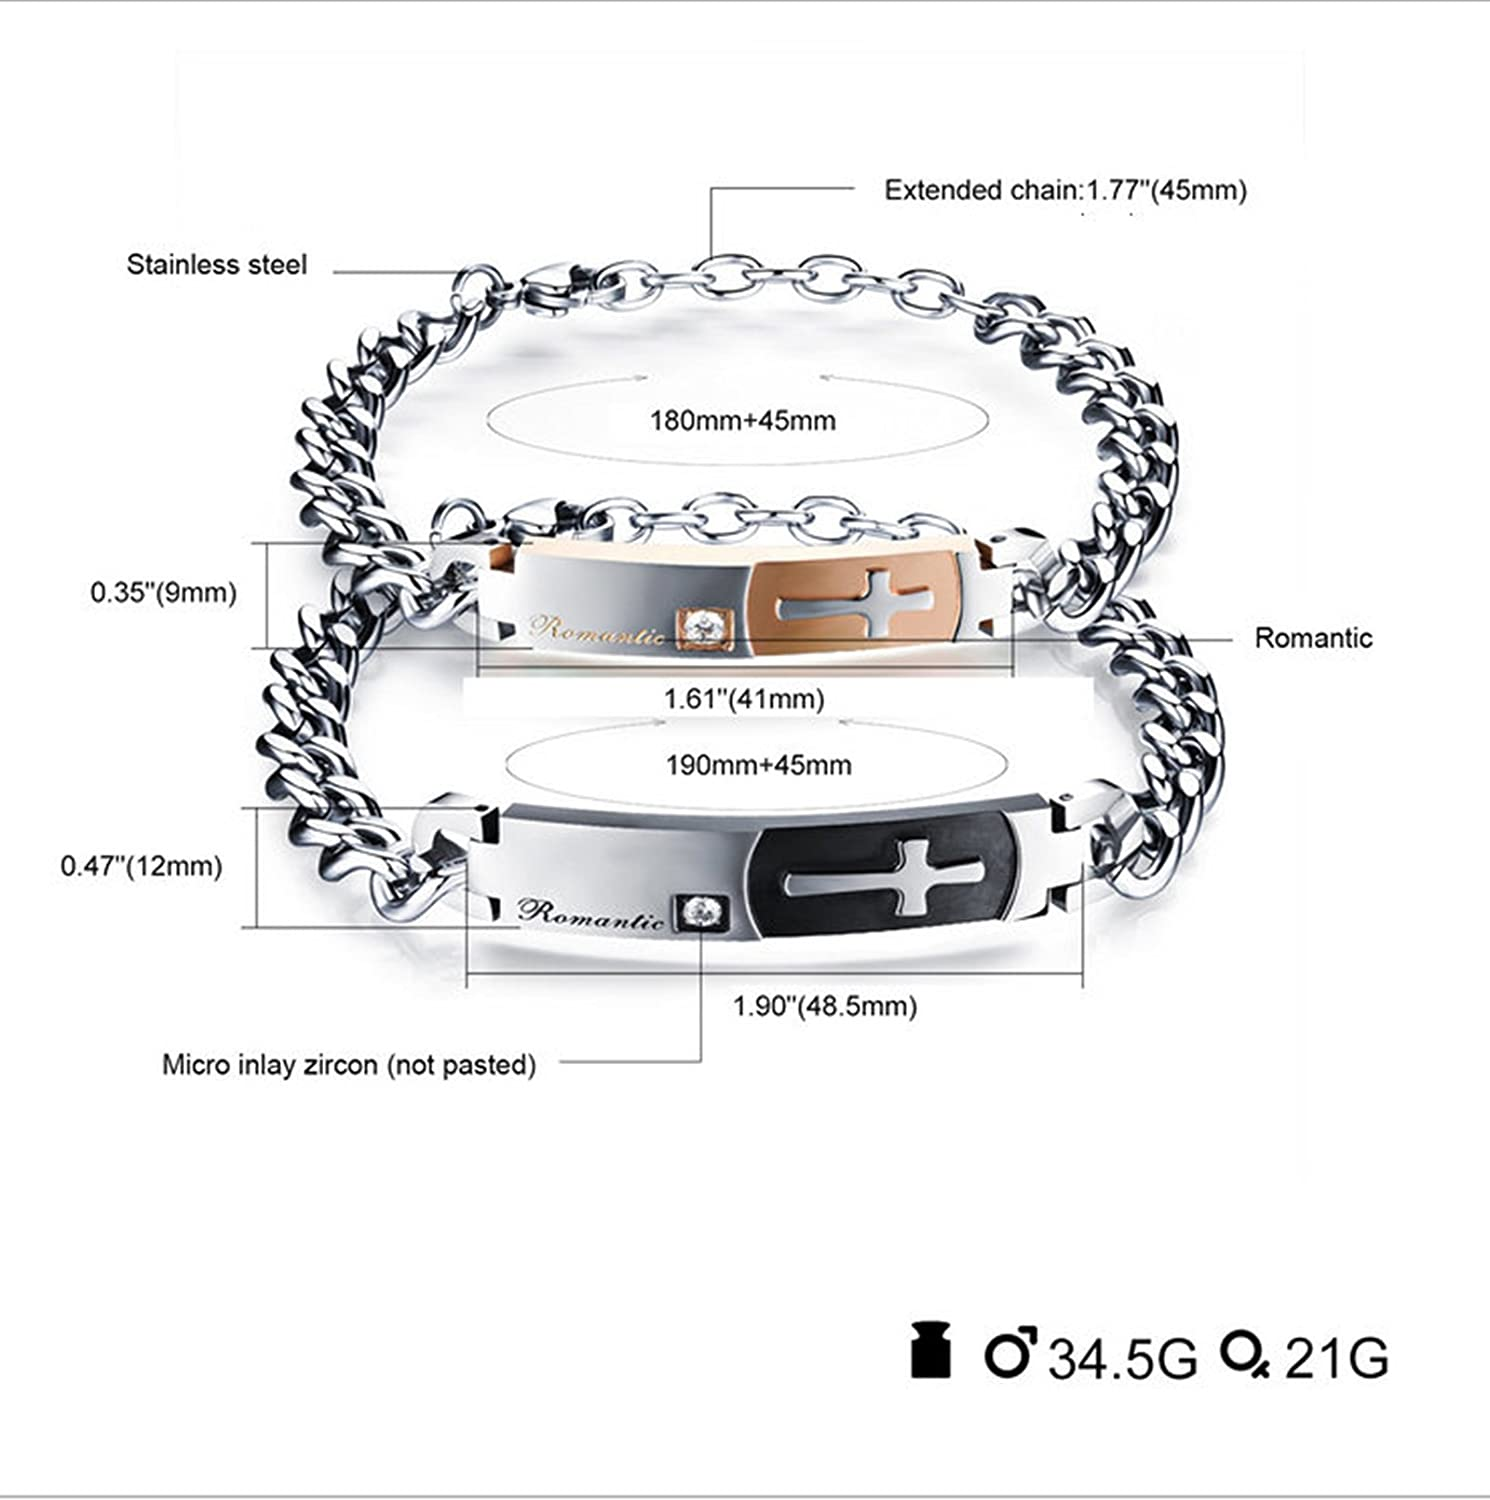 Bishilin Stainless Steel Bracelet for Women Engraving His Beauty Cross with Cubic Zirconia Rose Gold